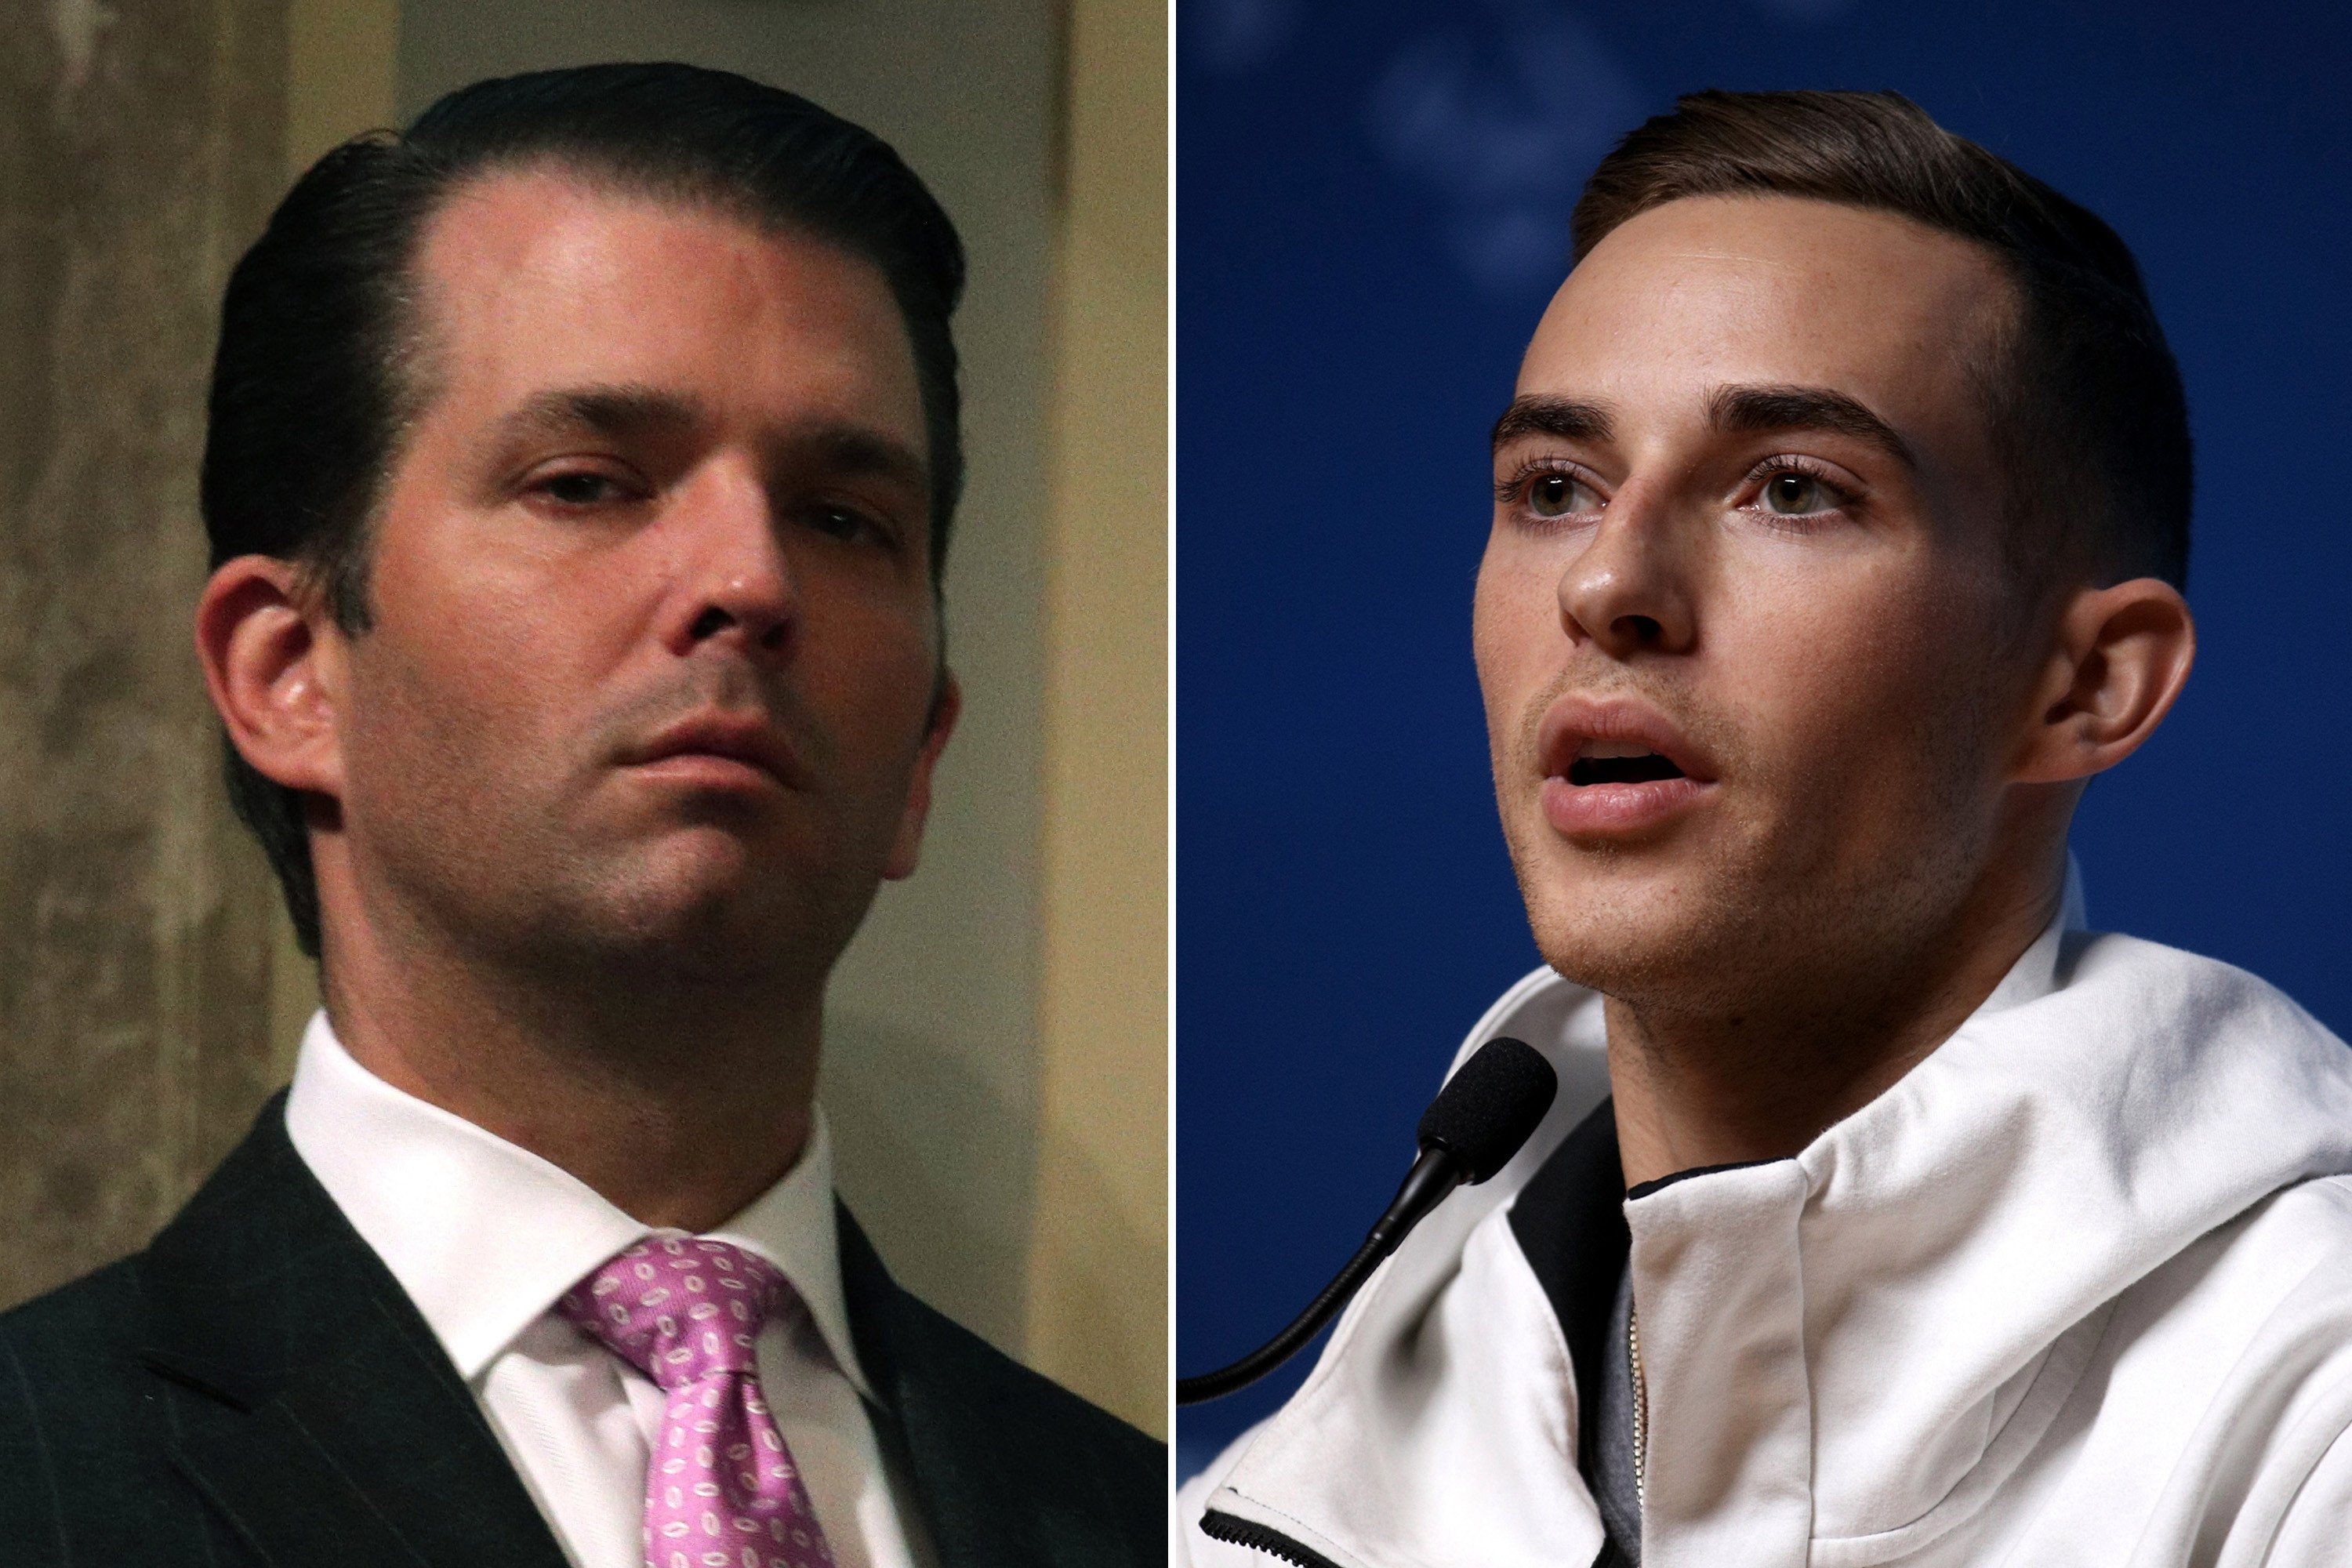 Trump Jr. slams Olympic medalist Adam Rippon